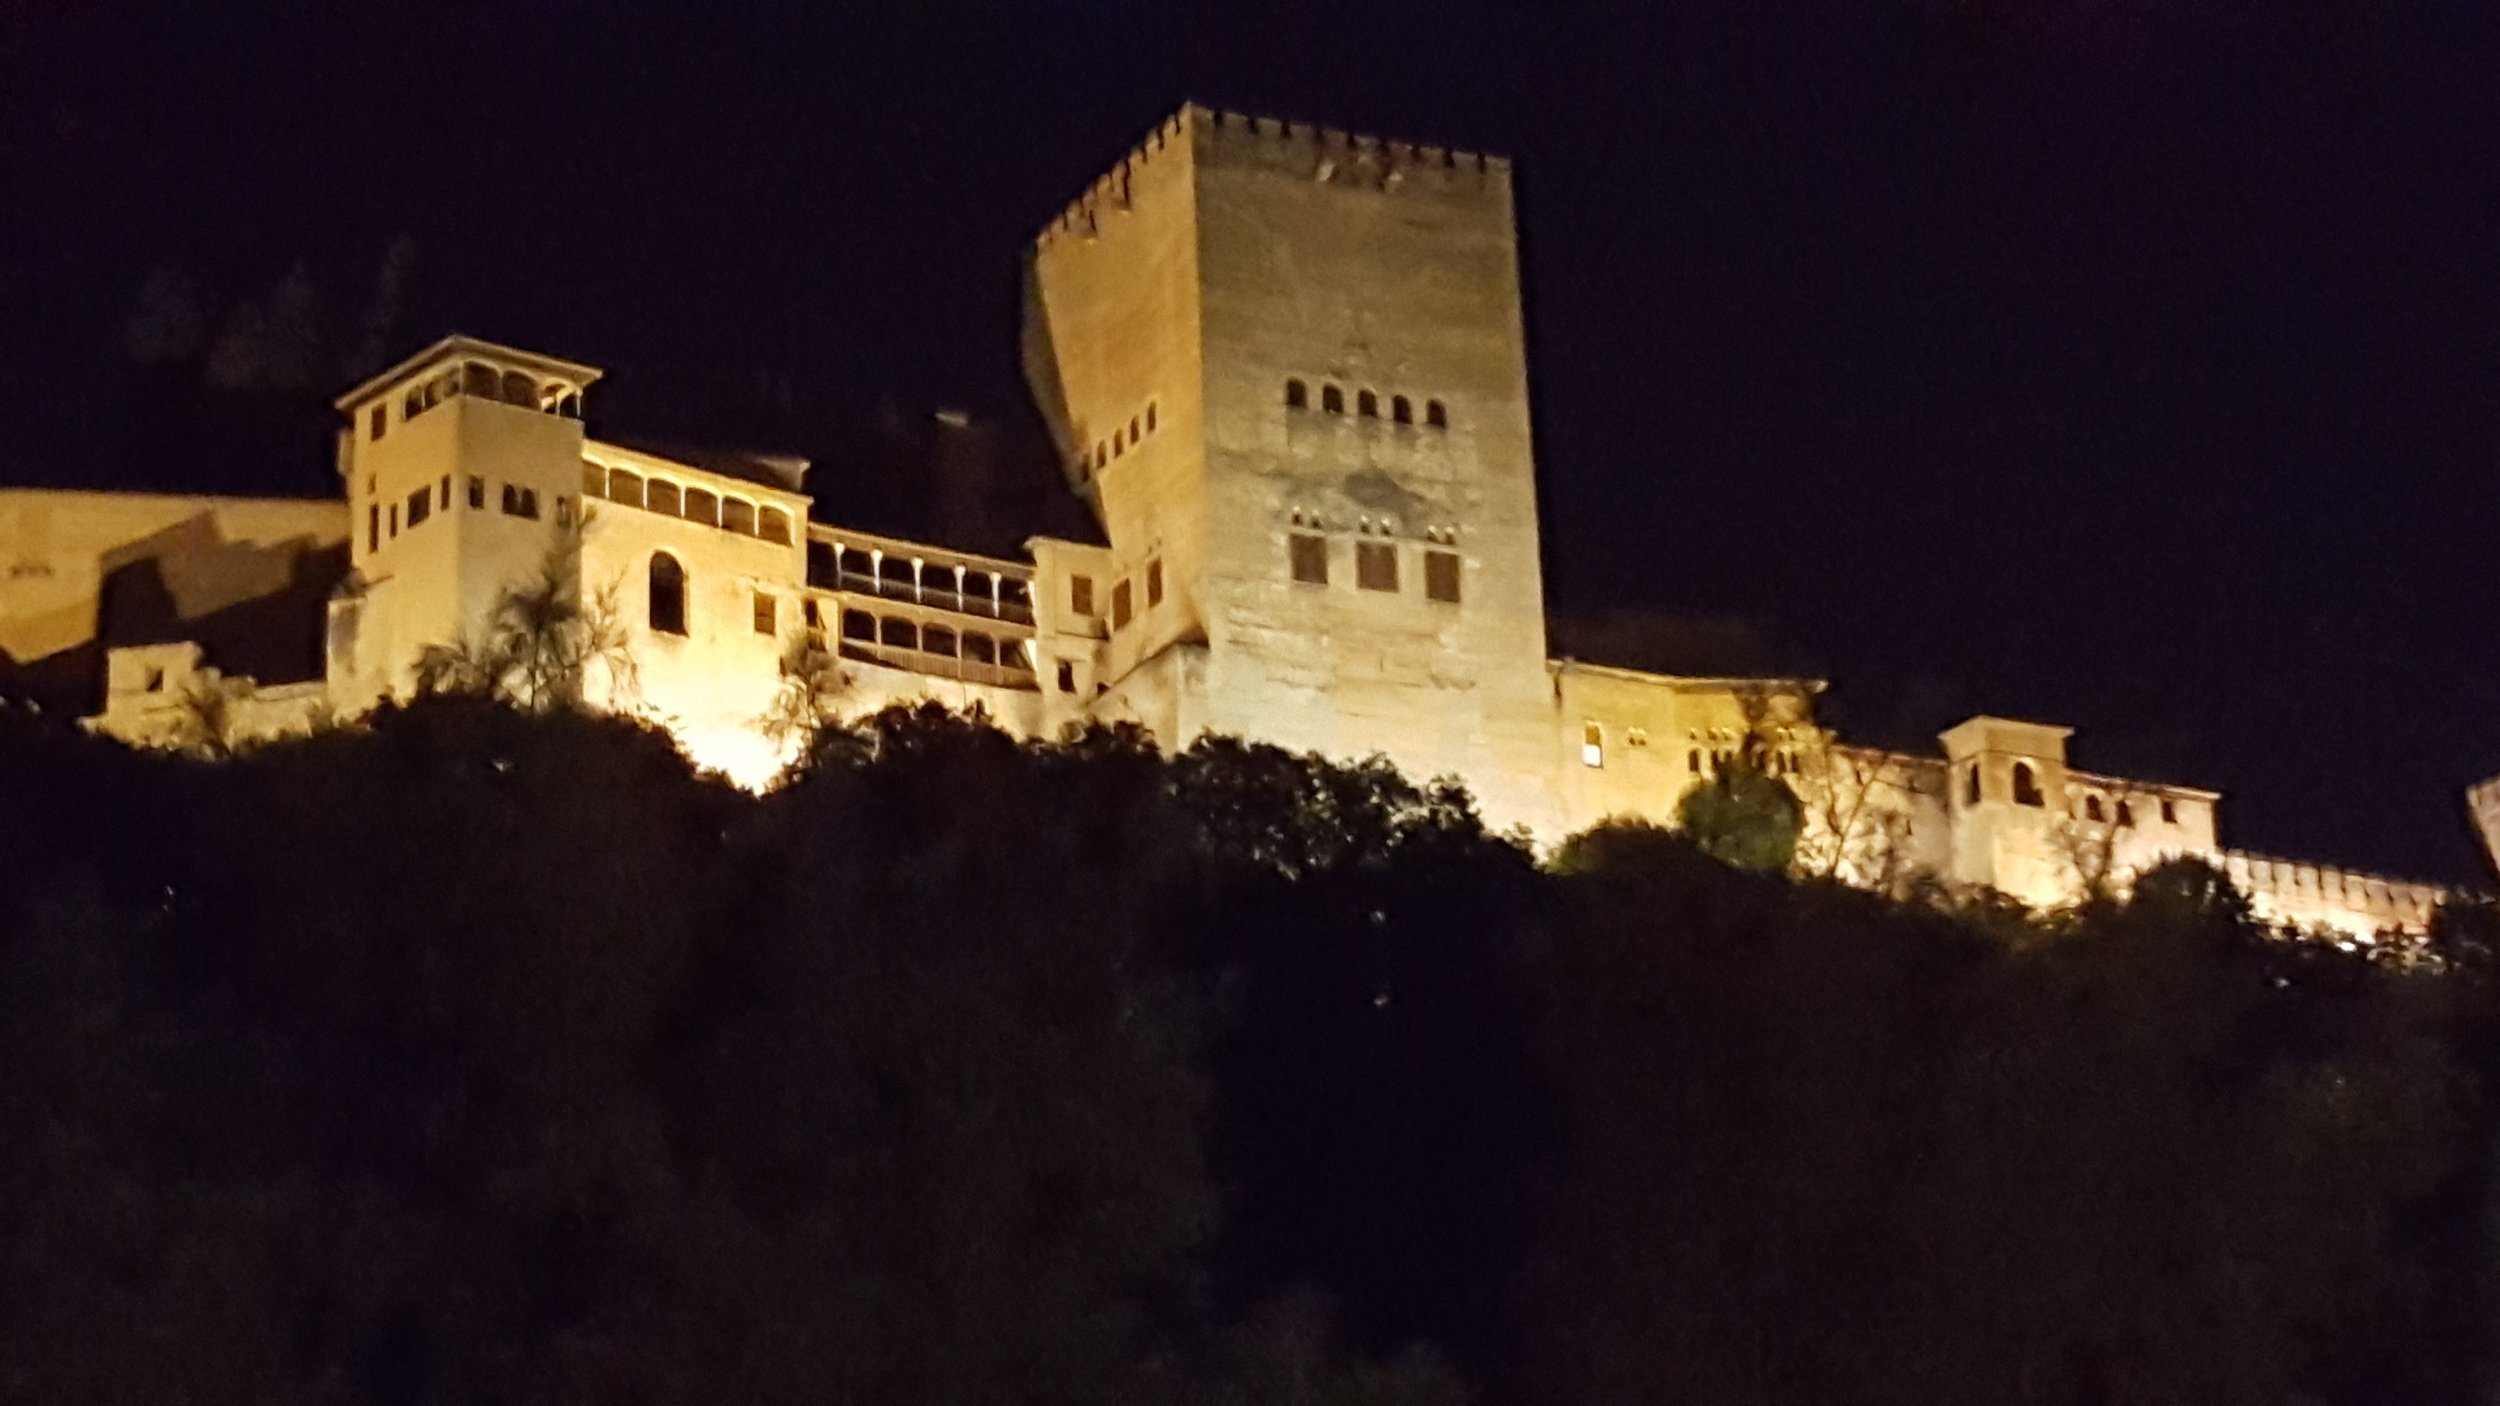 Alhambra Palace at night